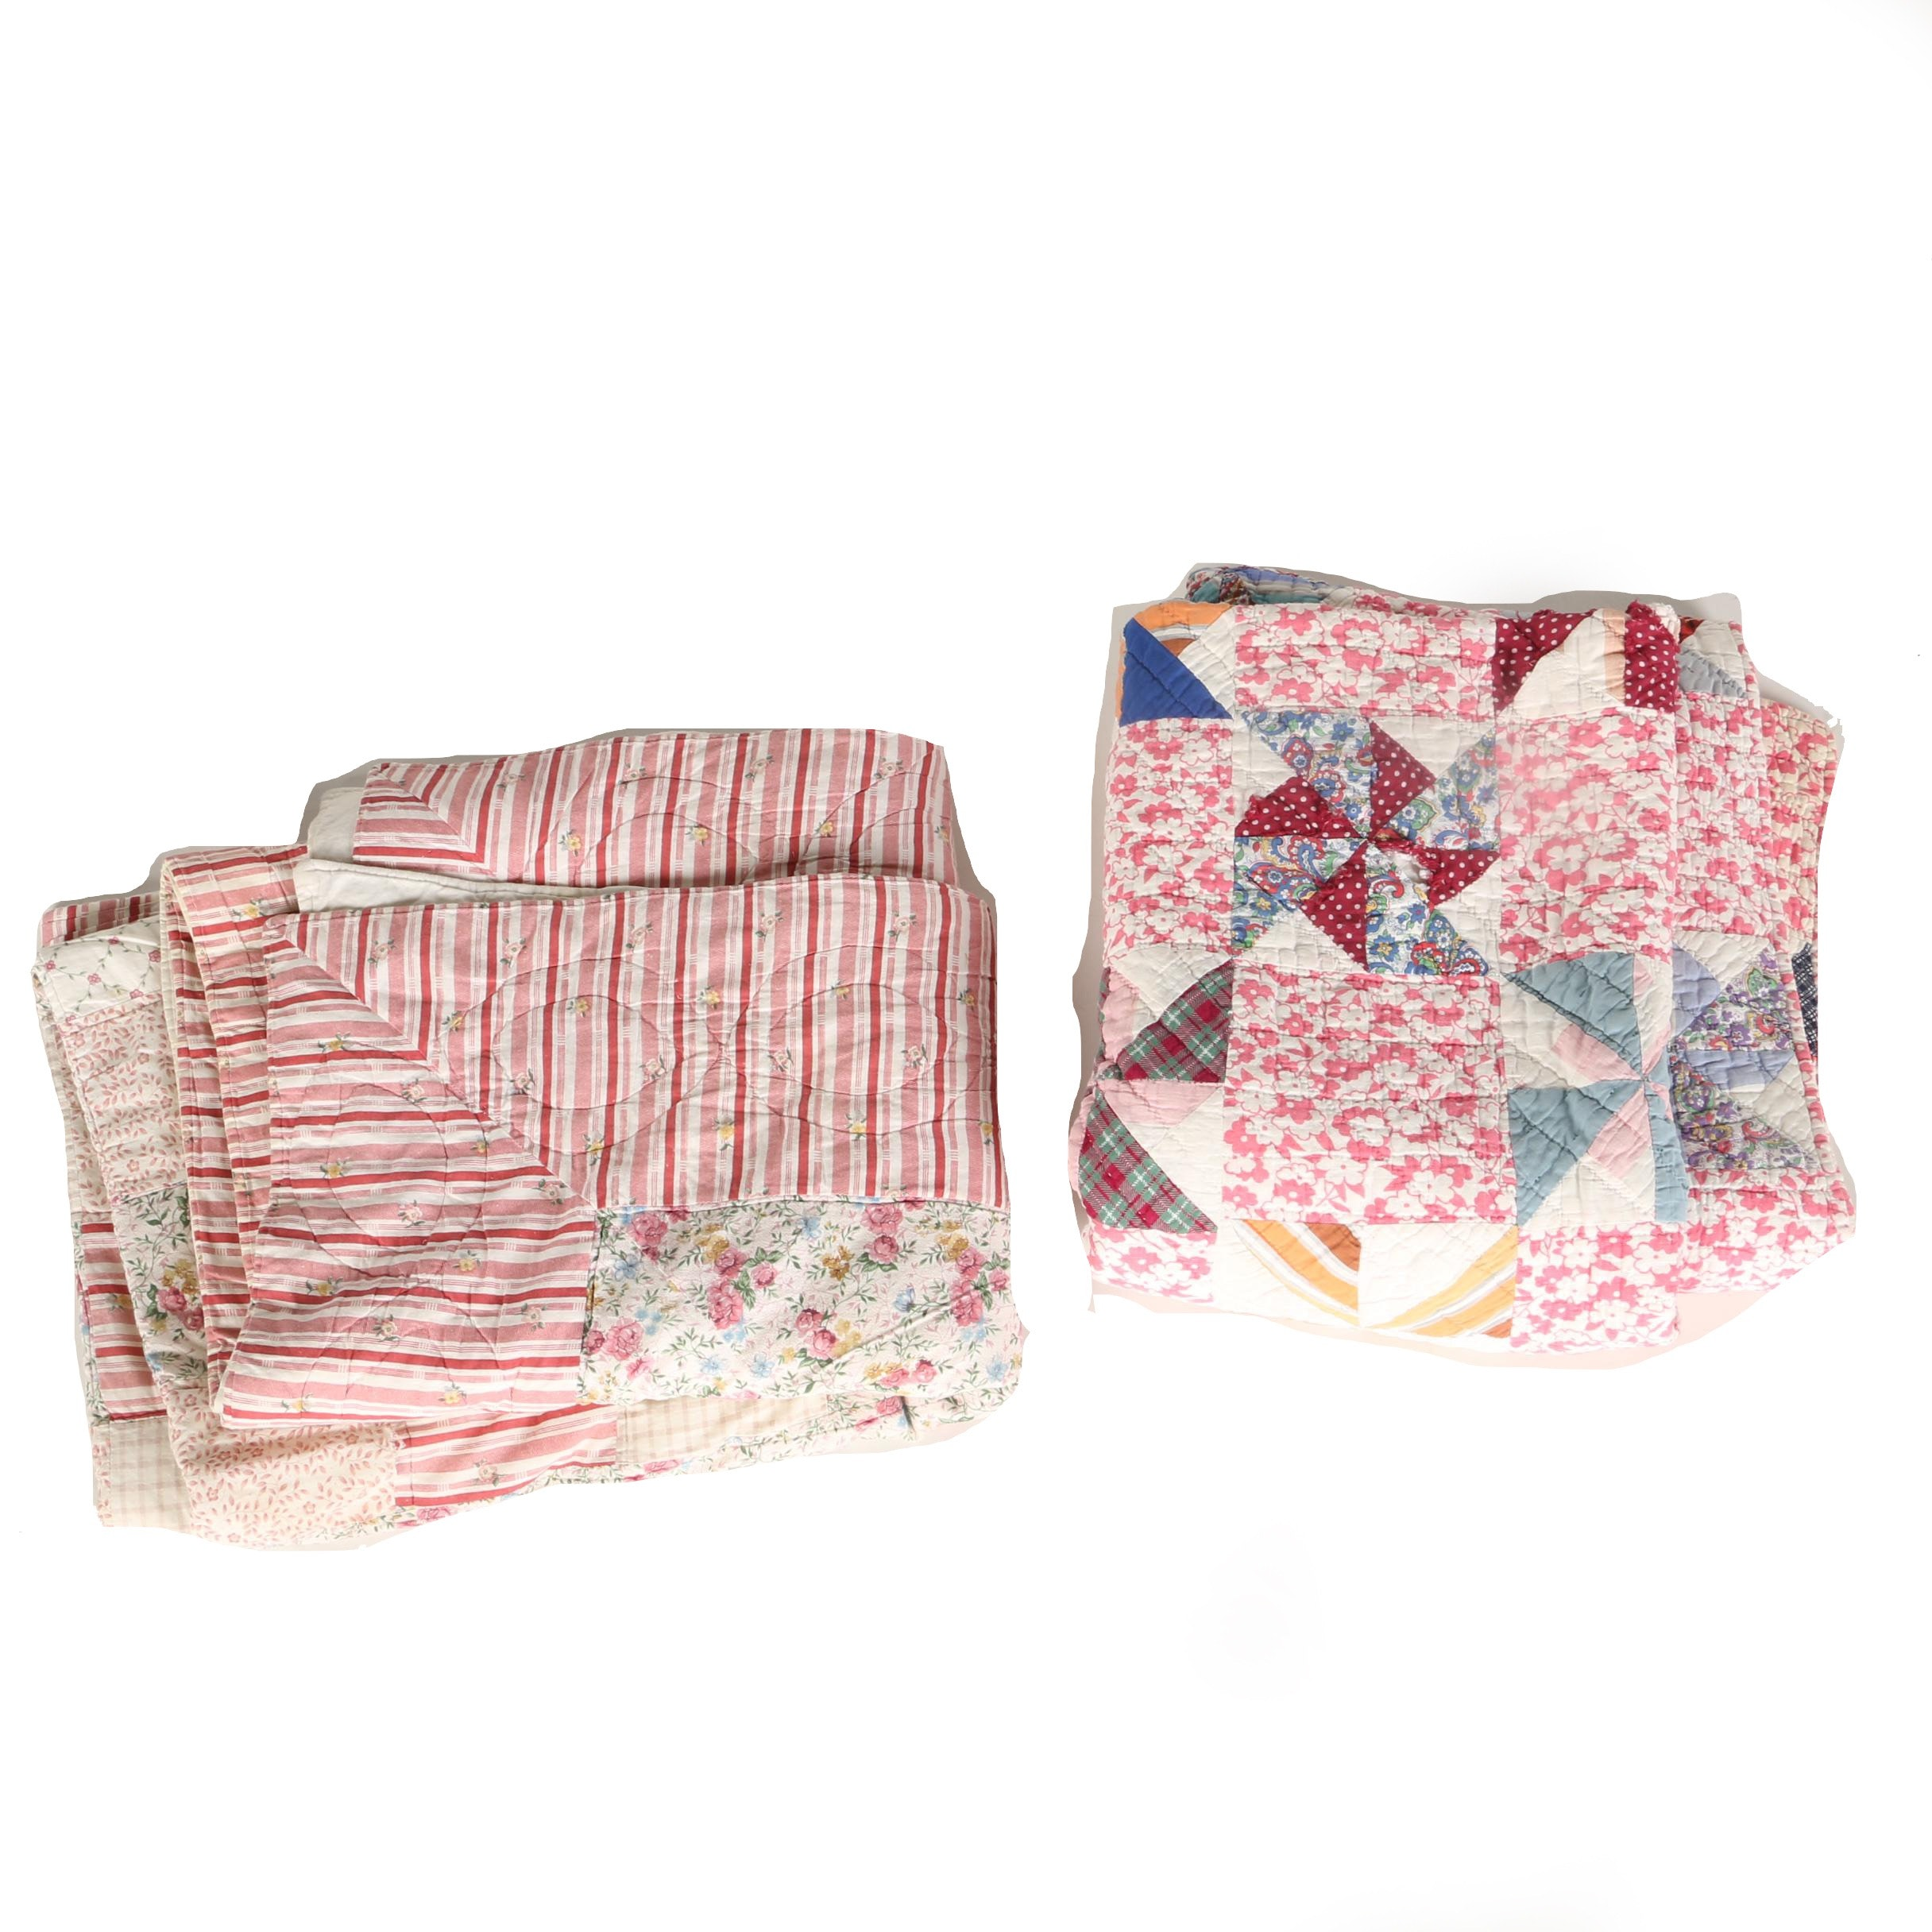 Handmade Rose Tone Quilts